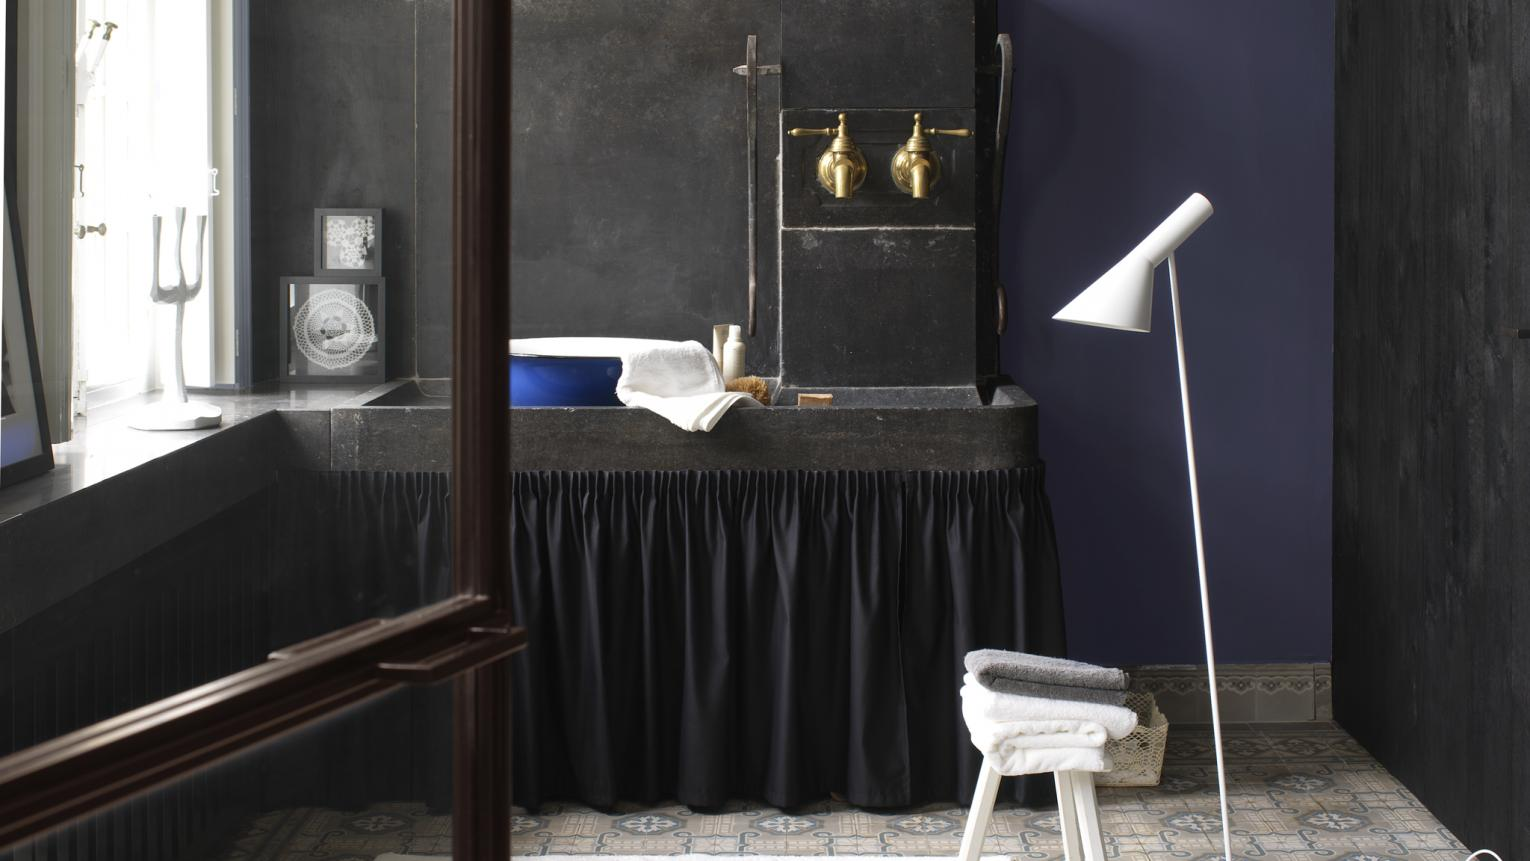 Be bold with deep, intense shades for an opulent bathroom look.